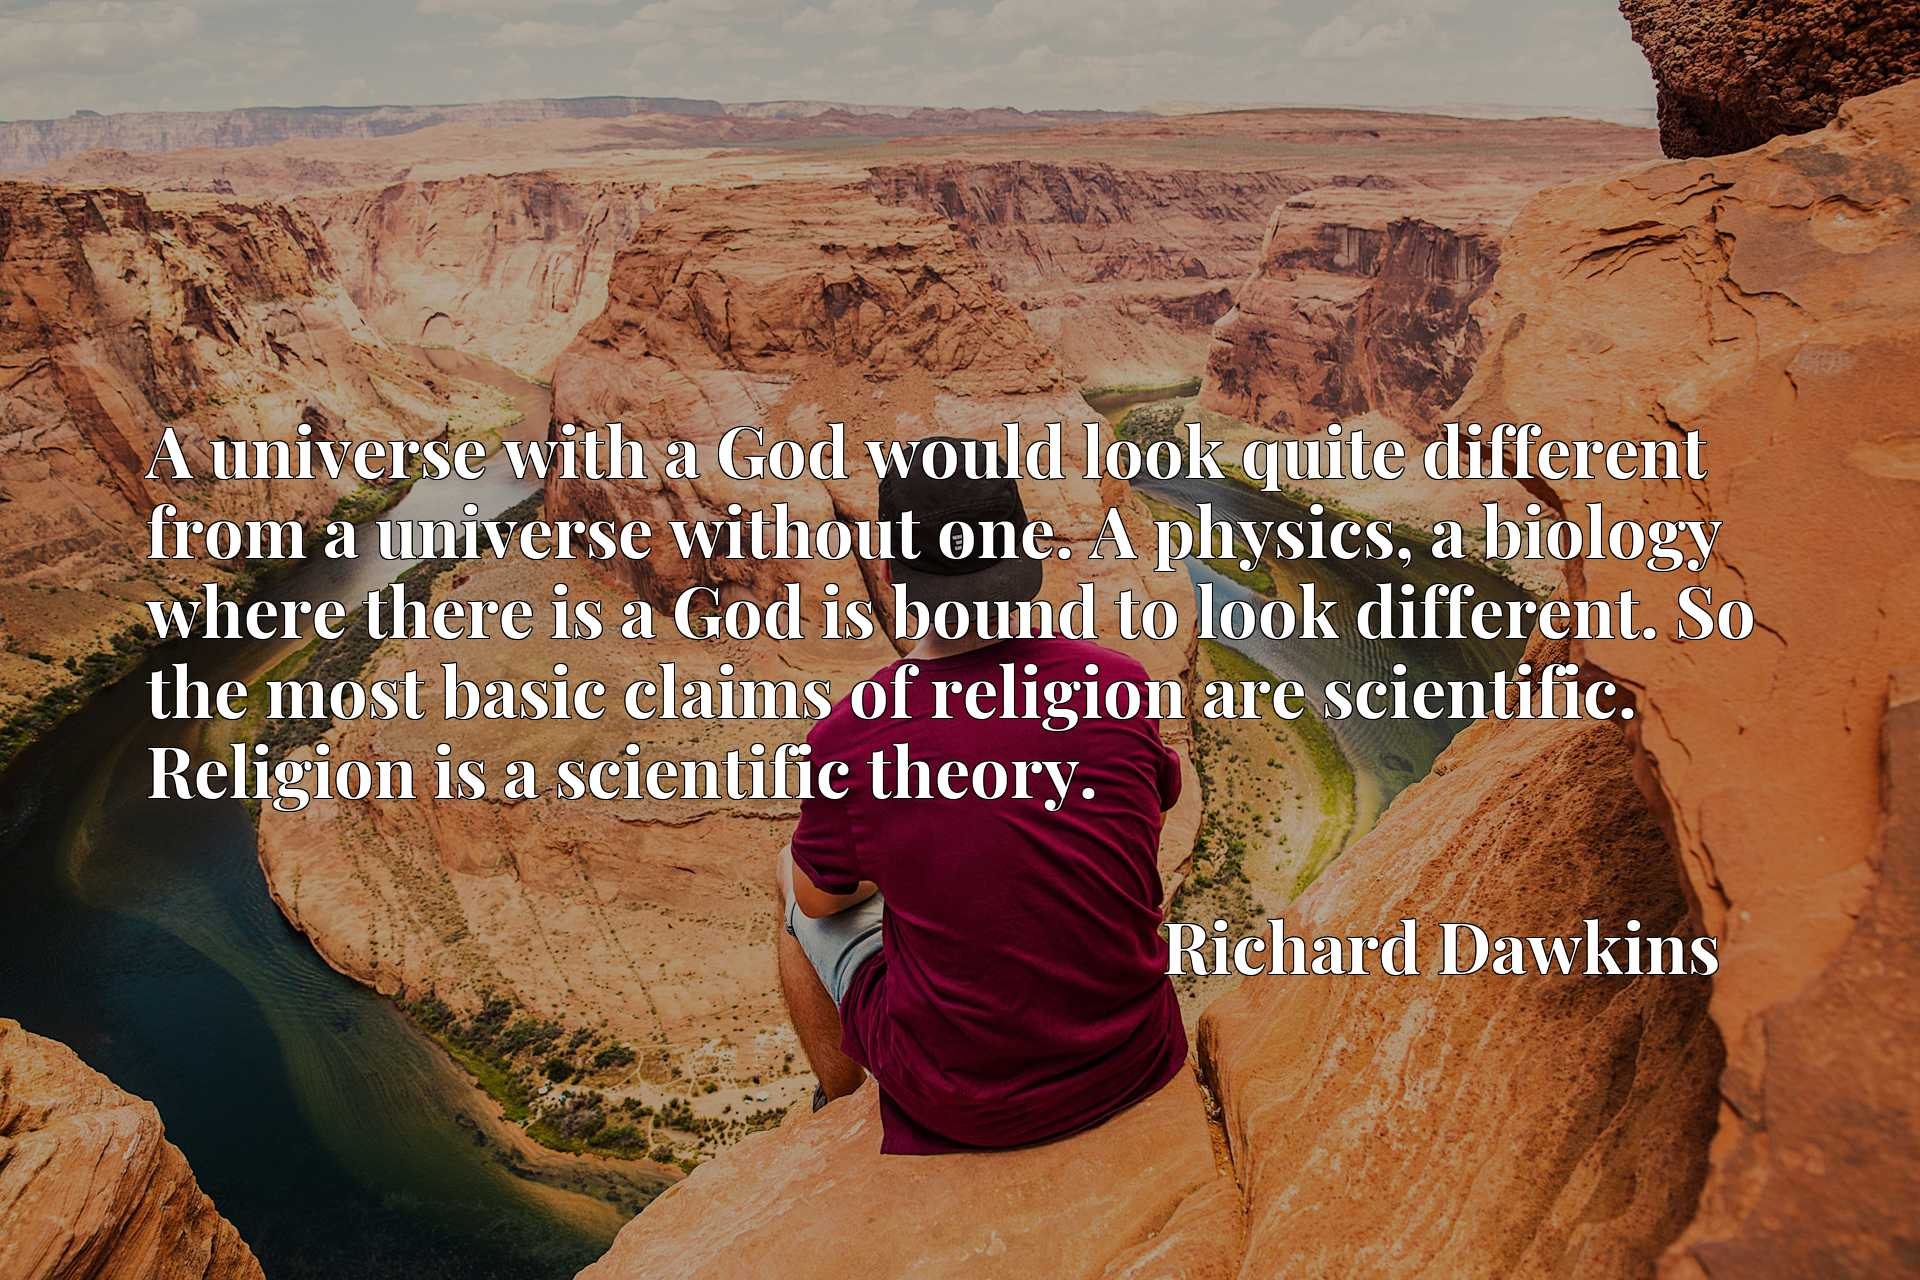 A universe with a God would look quite different from a universe without one. A physics, a biology where there is a God is bound to look different. So the most basic claims of religion are scientific. Religion is a scientific theory.